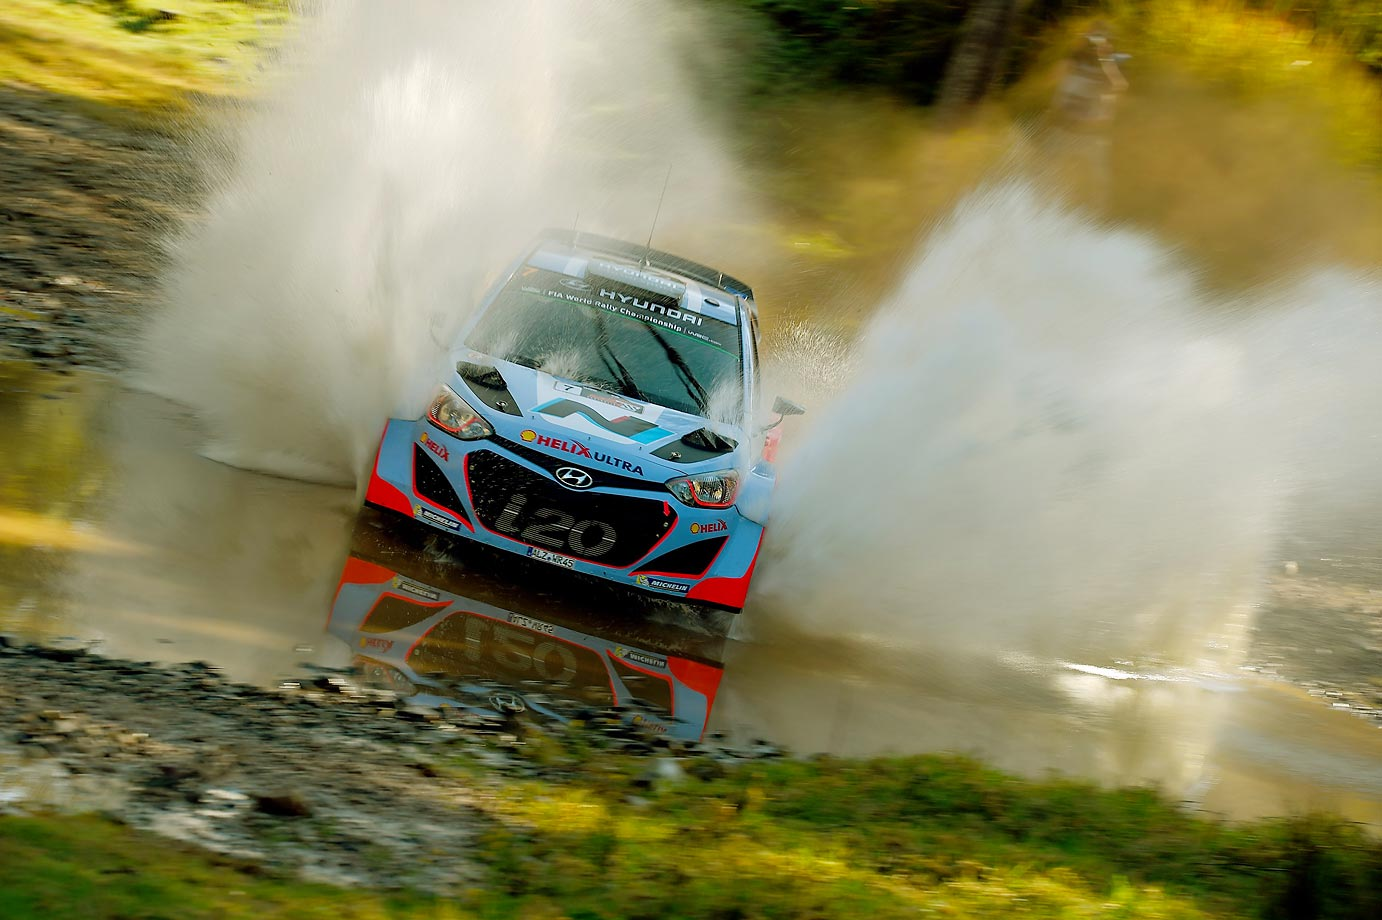 Thierry Neuville of Belgium and Nicolas Gilsoul of Belgium compete in the Hyundai Motorsport Hyundai I20 WRC.